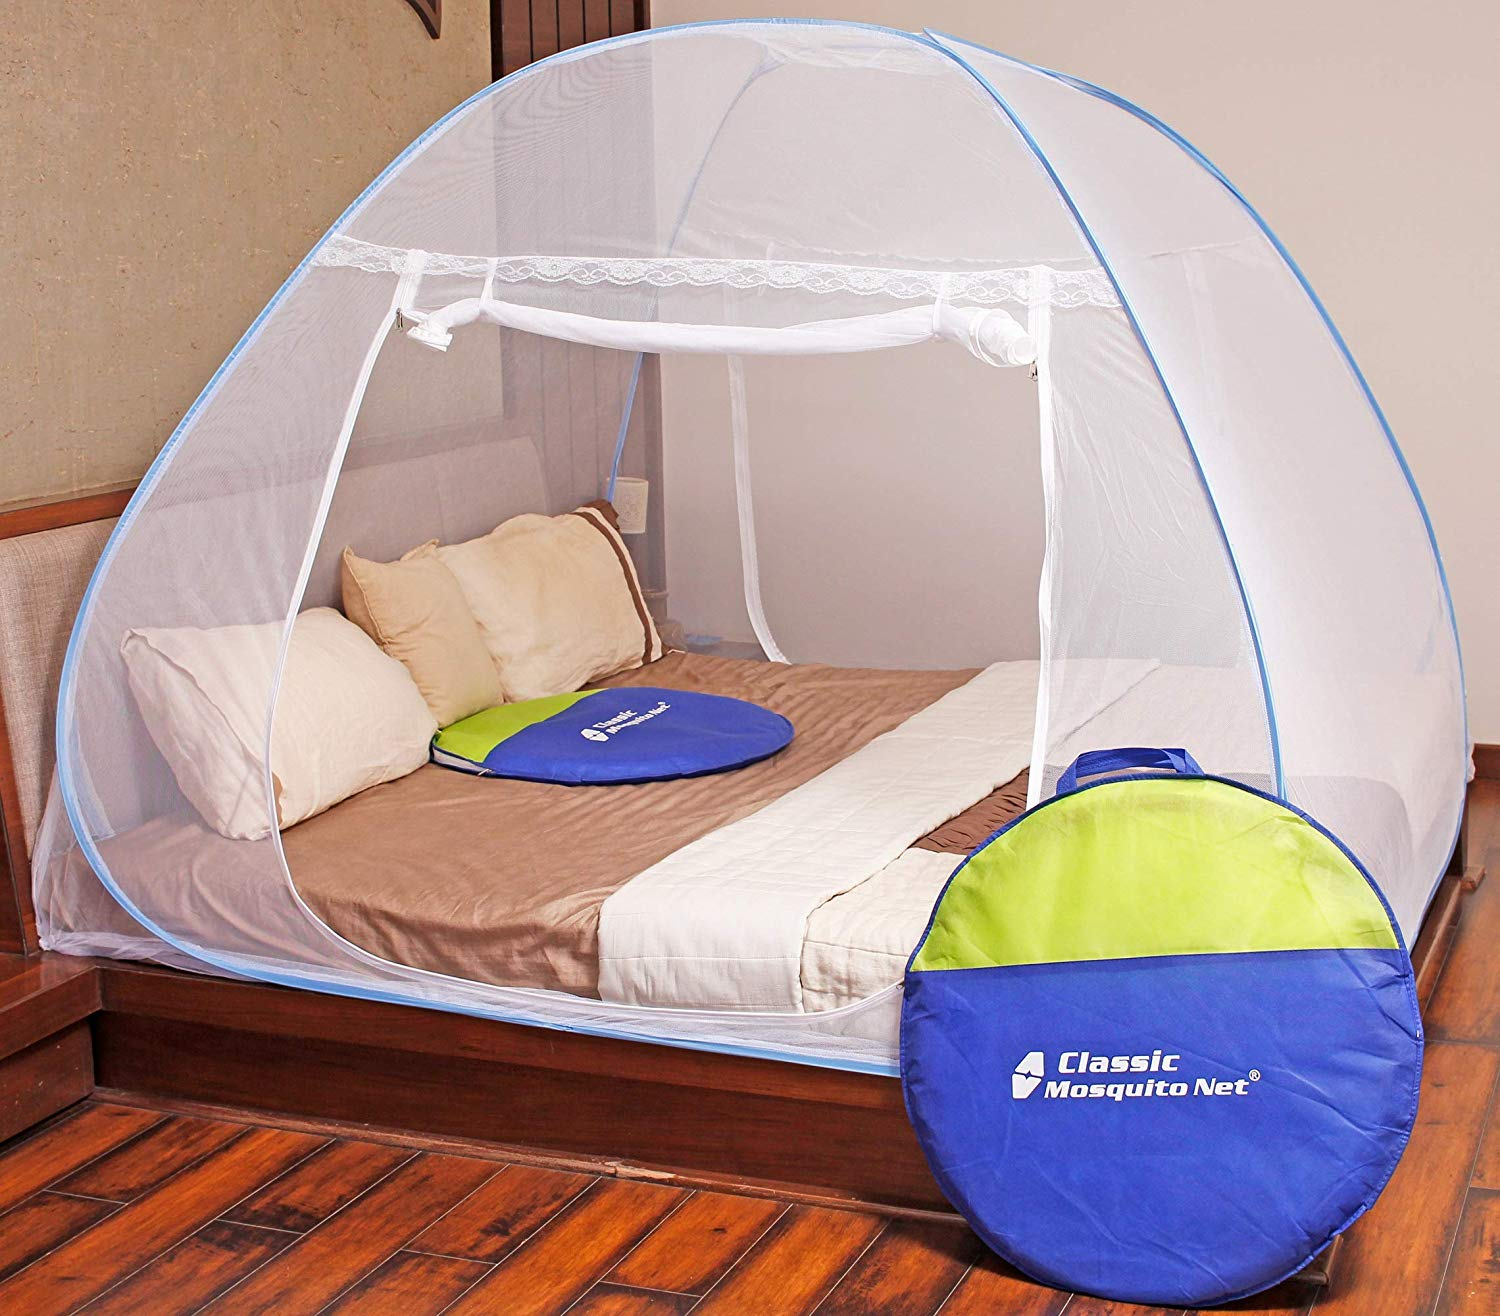 These Mosquito Nets will protect you from Dengue and Chikungunya